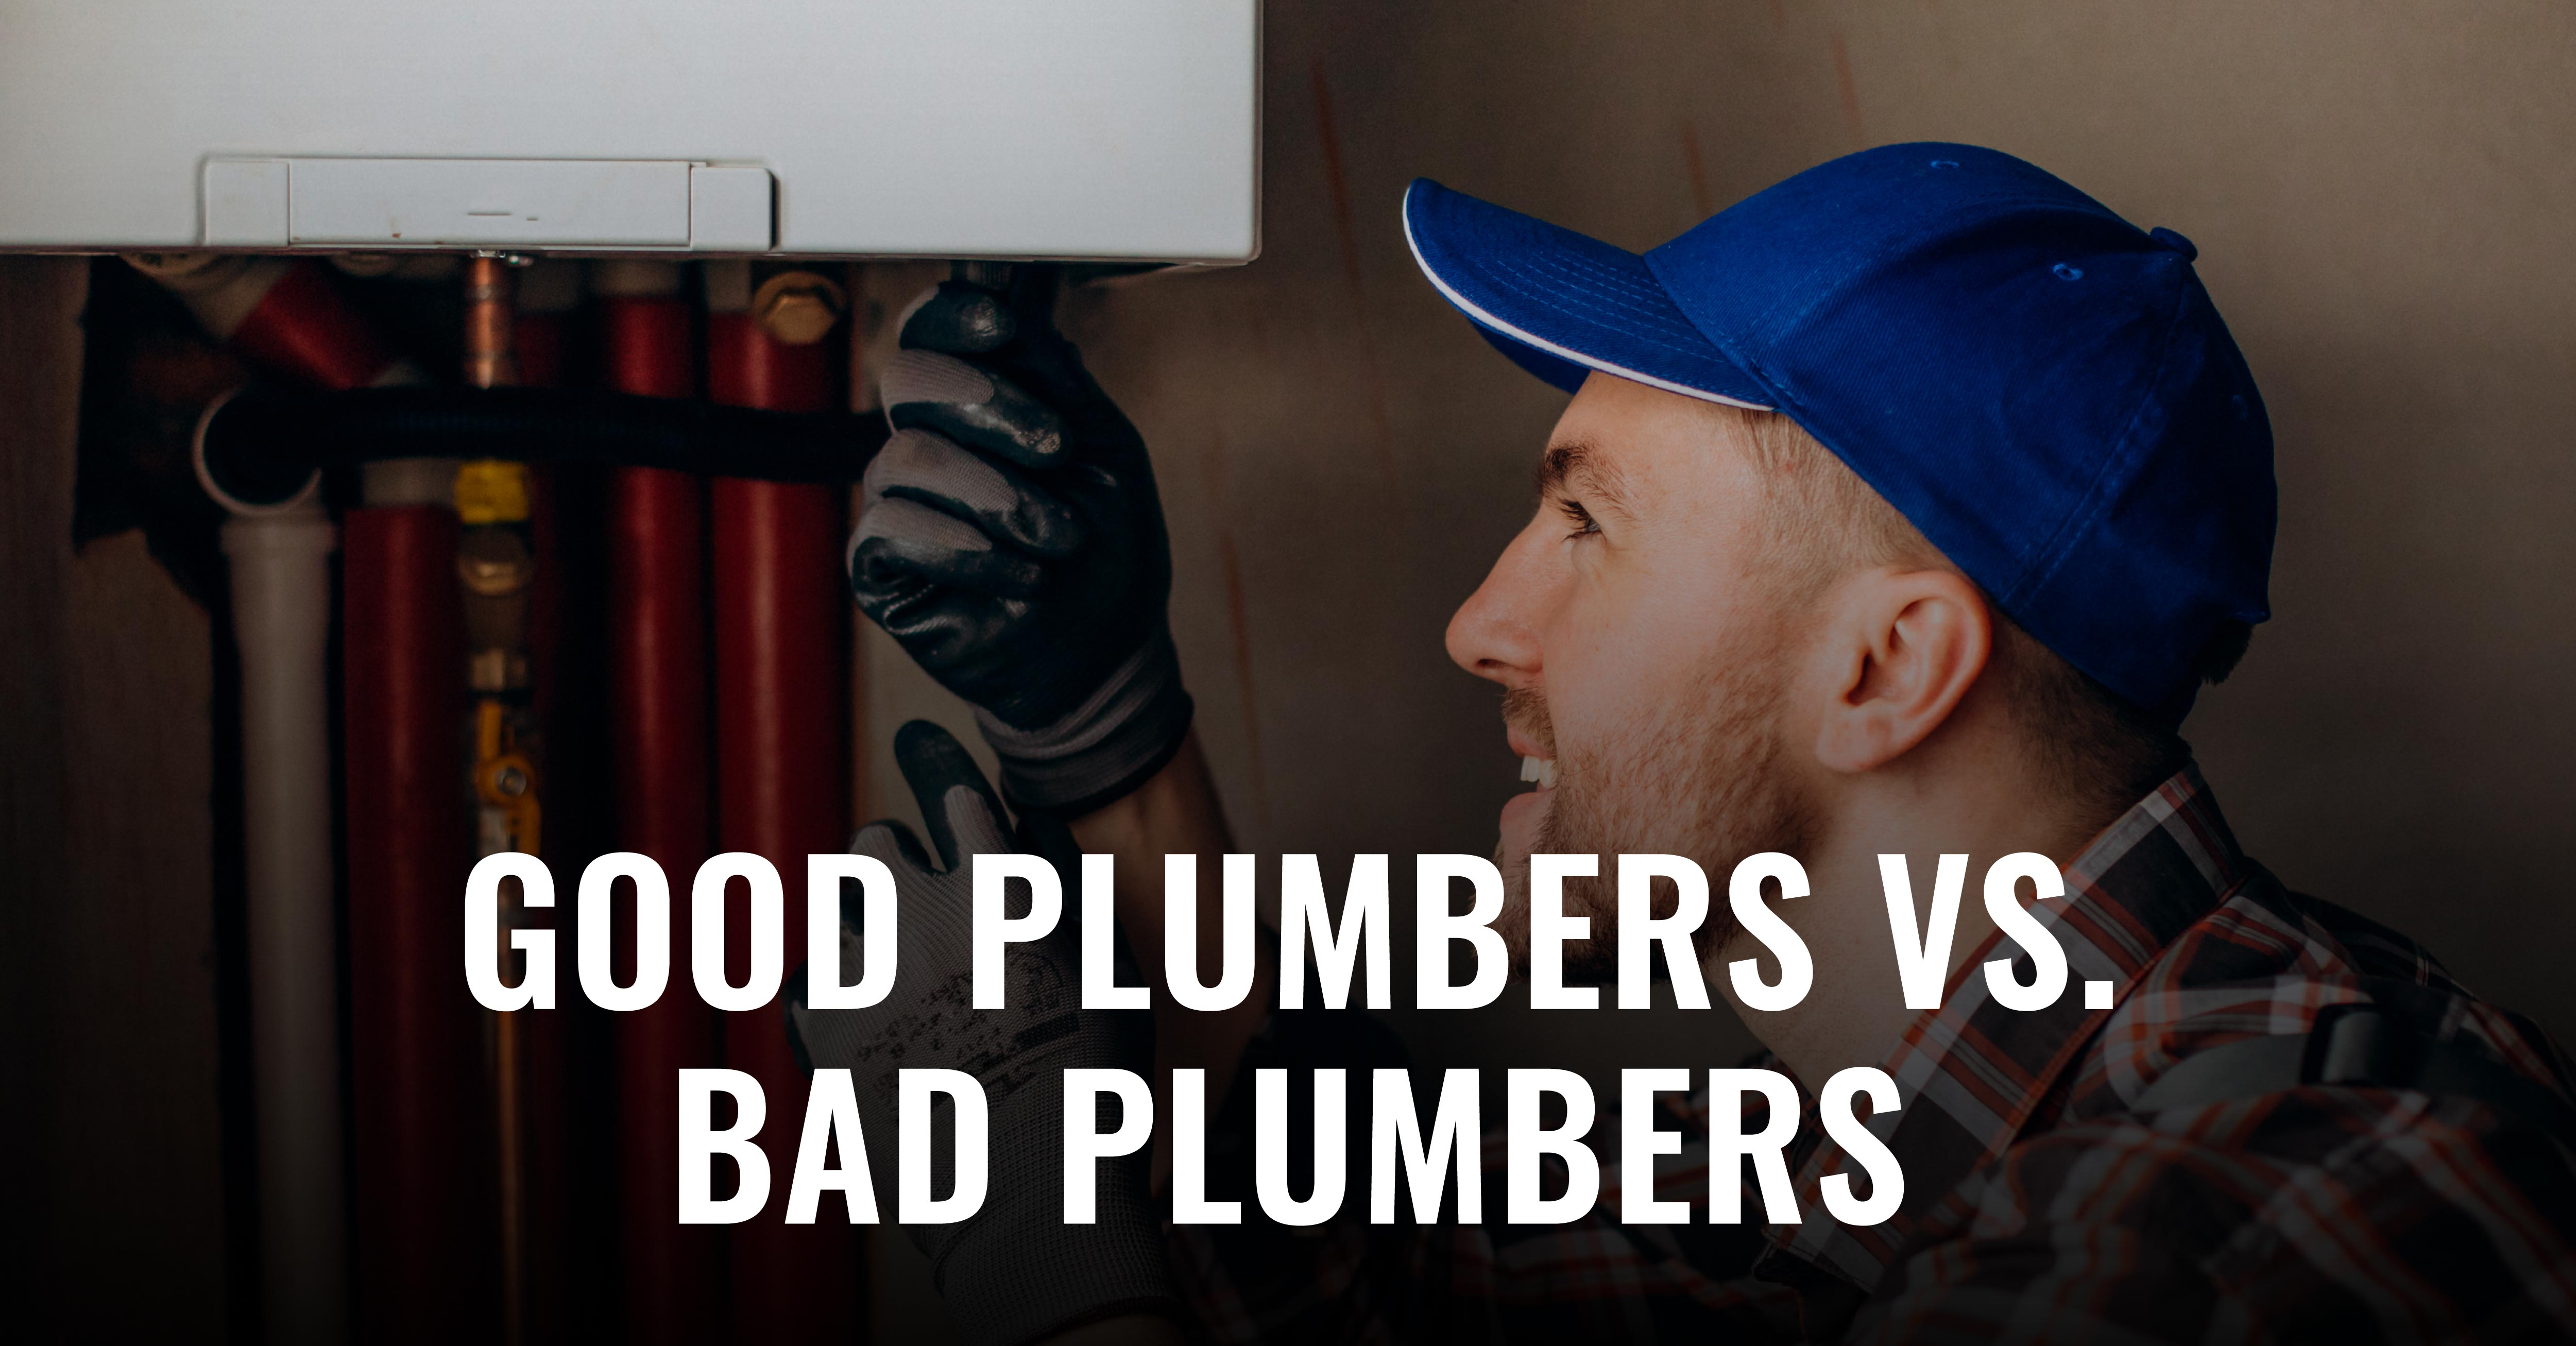 How can you tell if you're working with a good plumber or a bad plumber? Read our latest blog post to find out!